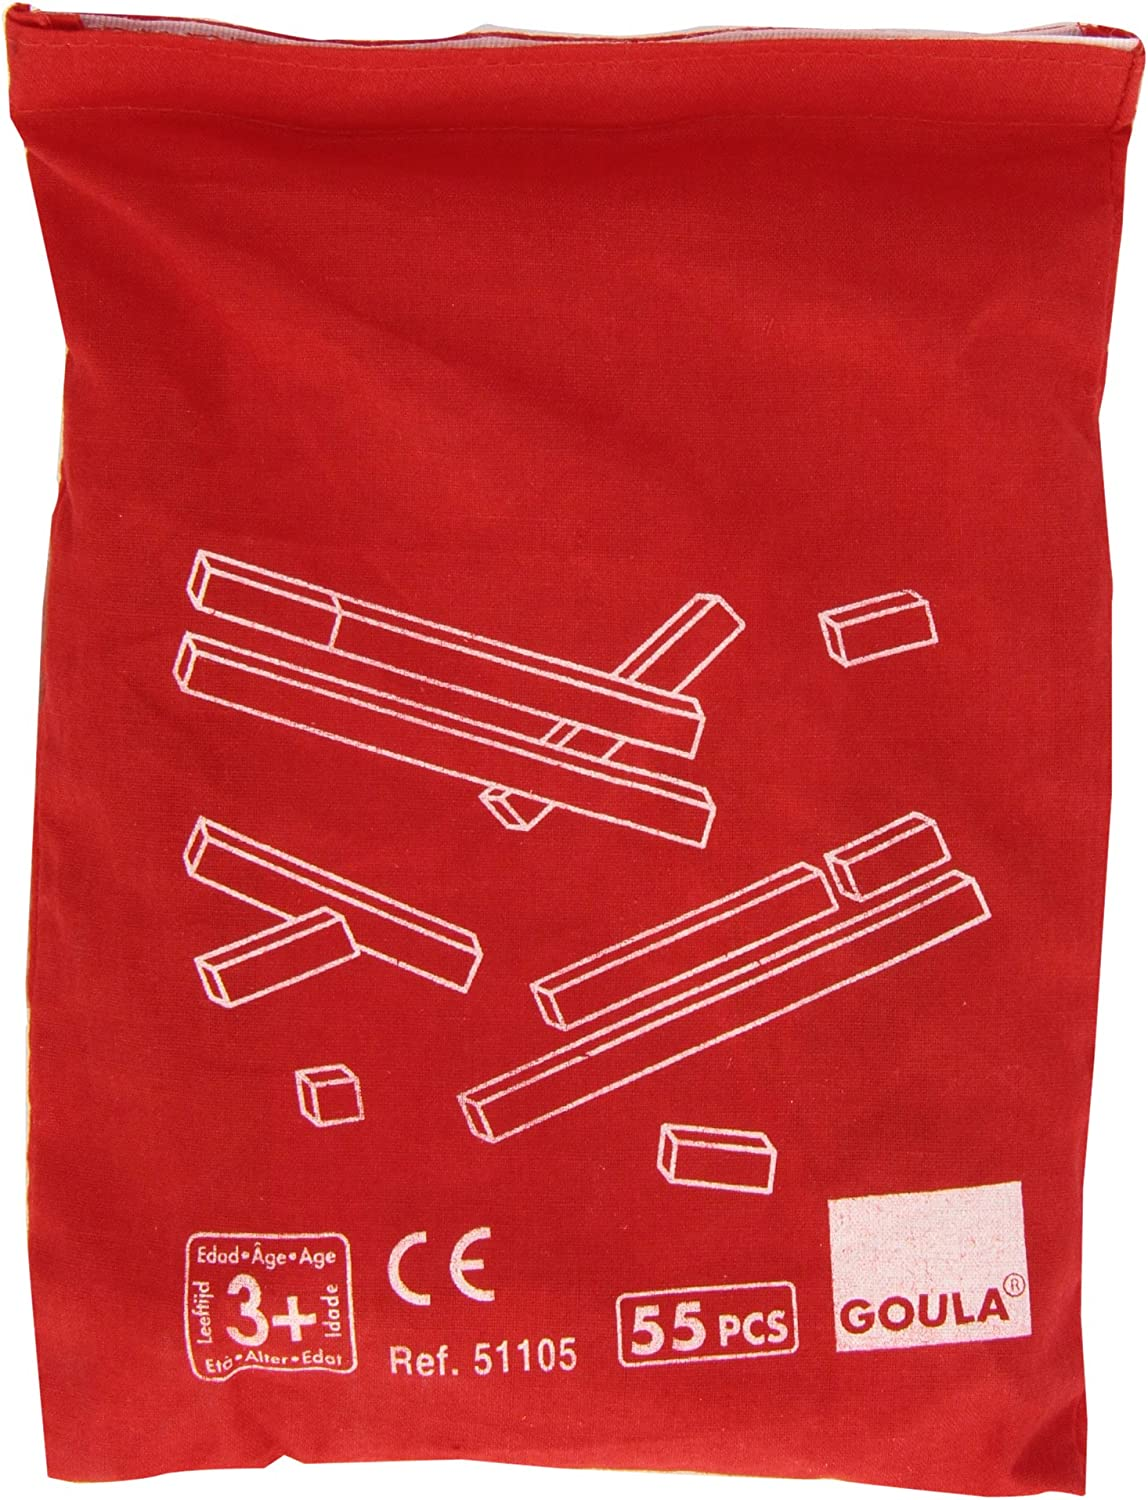 Goula- Counting Rods + Bag Regletas en Bolsa, Juego Educativo, Multicolor (51105)